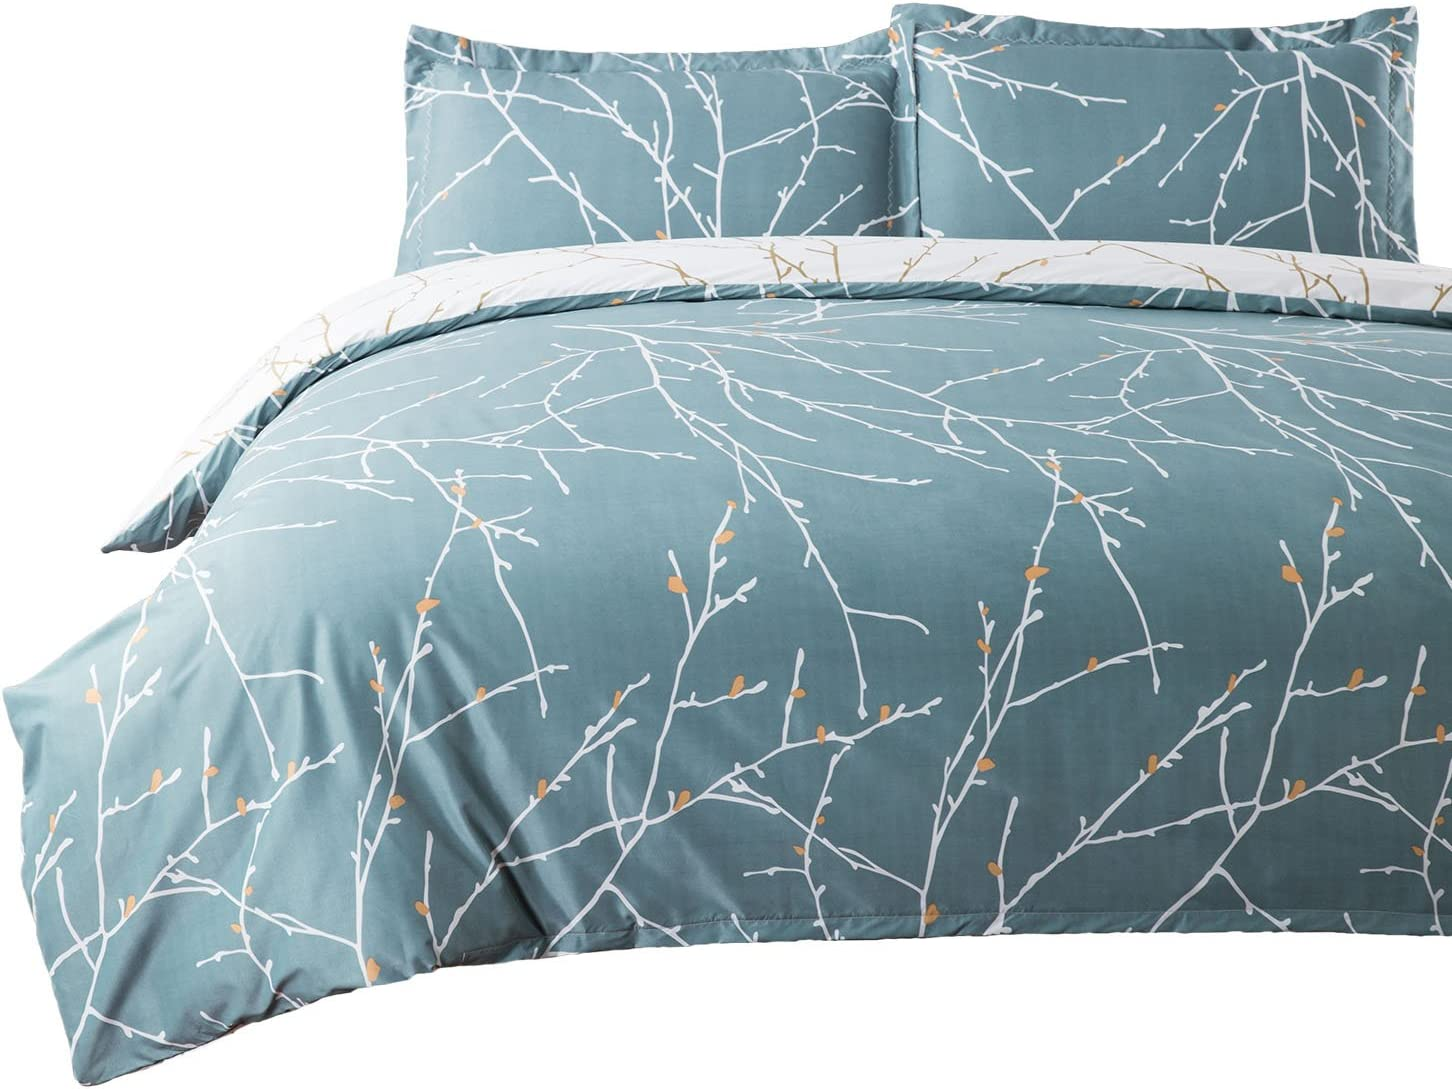 Bedsure Duvet Cover Set with Zipper Closure-Teal/White Printed Branch Pattern Reversible,Twin(68x90 inches)-2 Pieces (1 Duvet Cover + 1 Pillow Shams)-110 GSM Ultra Soft Hypoallergenic Microfiber